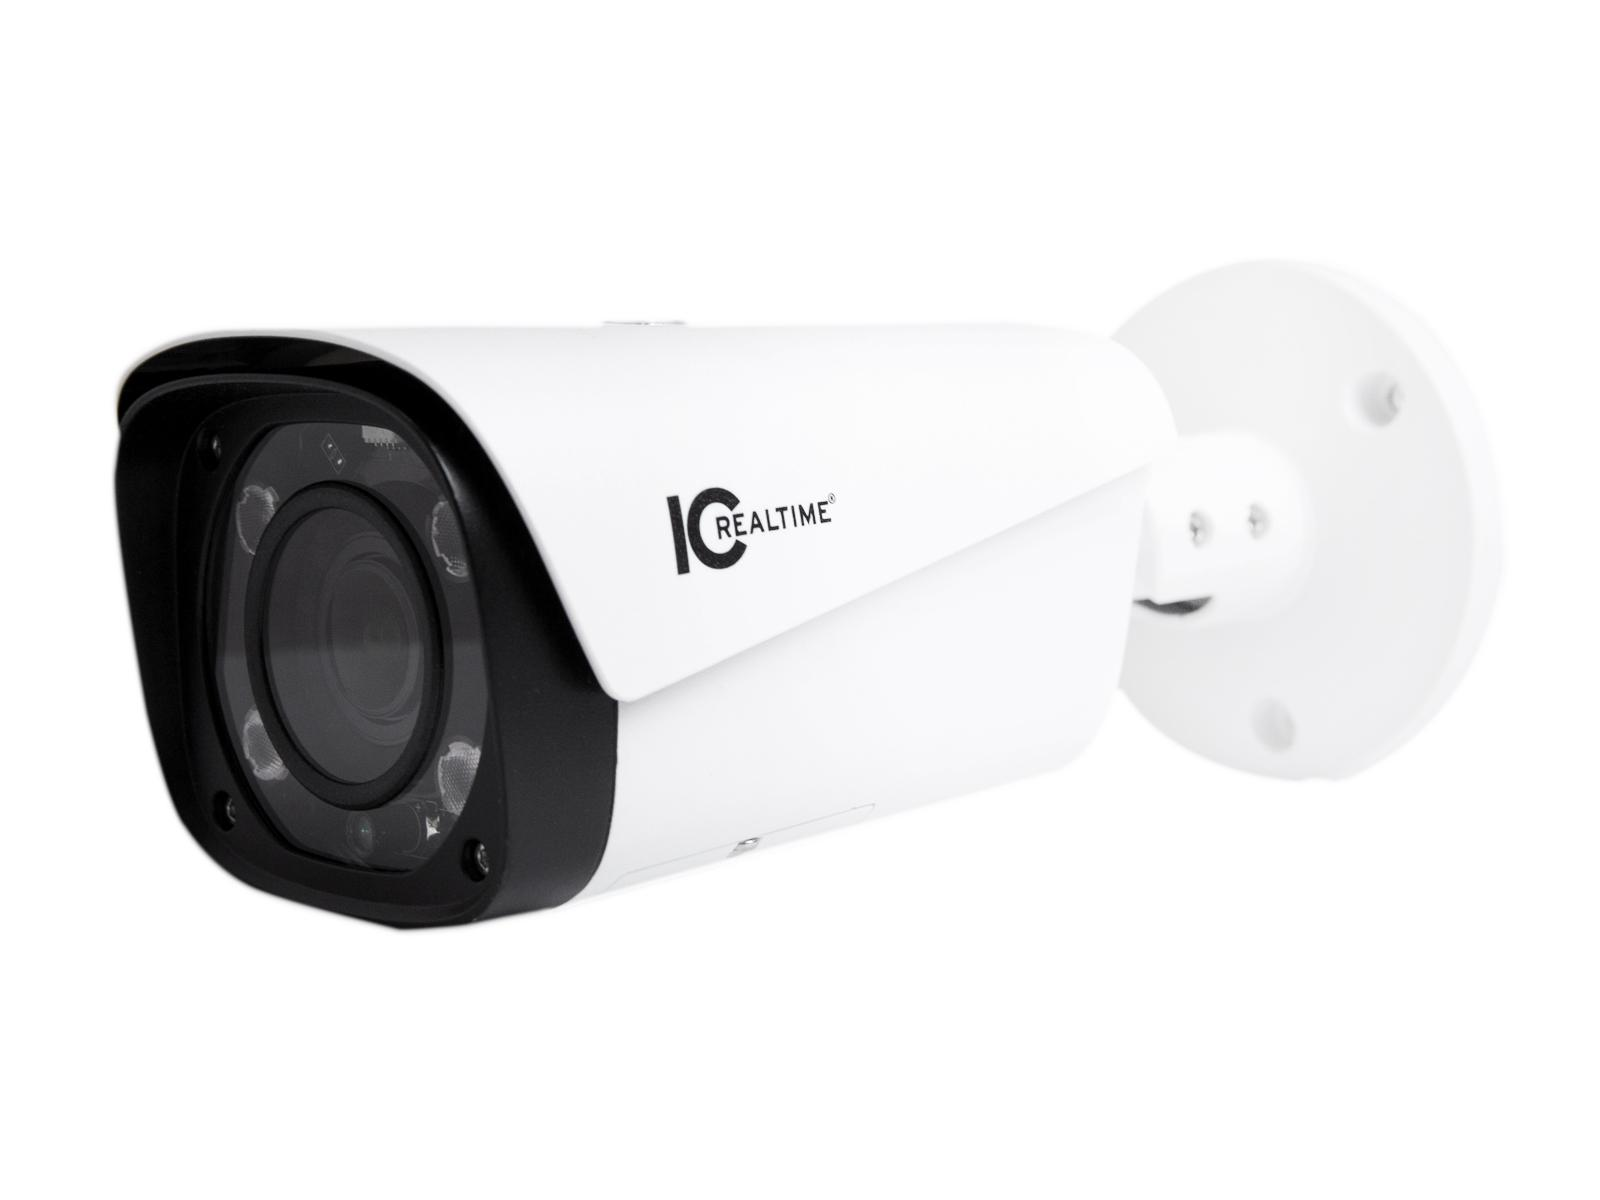 ICRealtime ICR-B2732Z 2MP IP Indoor/Outdoor Mid Size Bullet Camera/2.7-12mm Lens/180ft Smart IR/POE